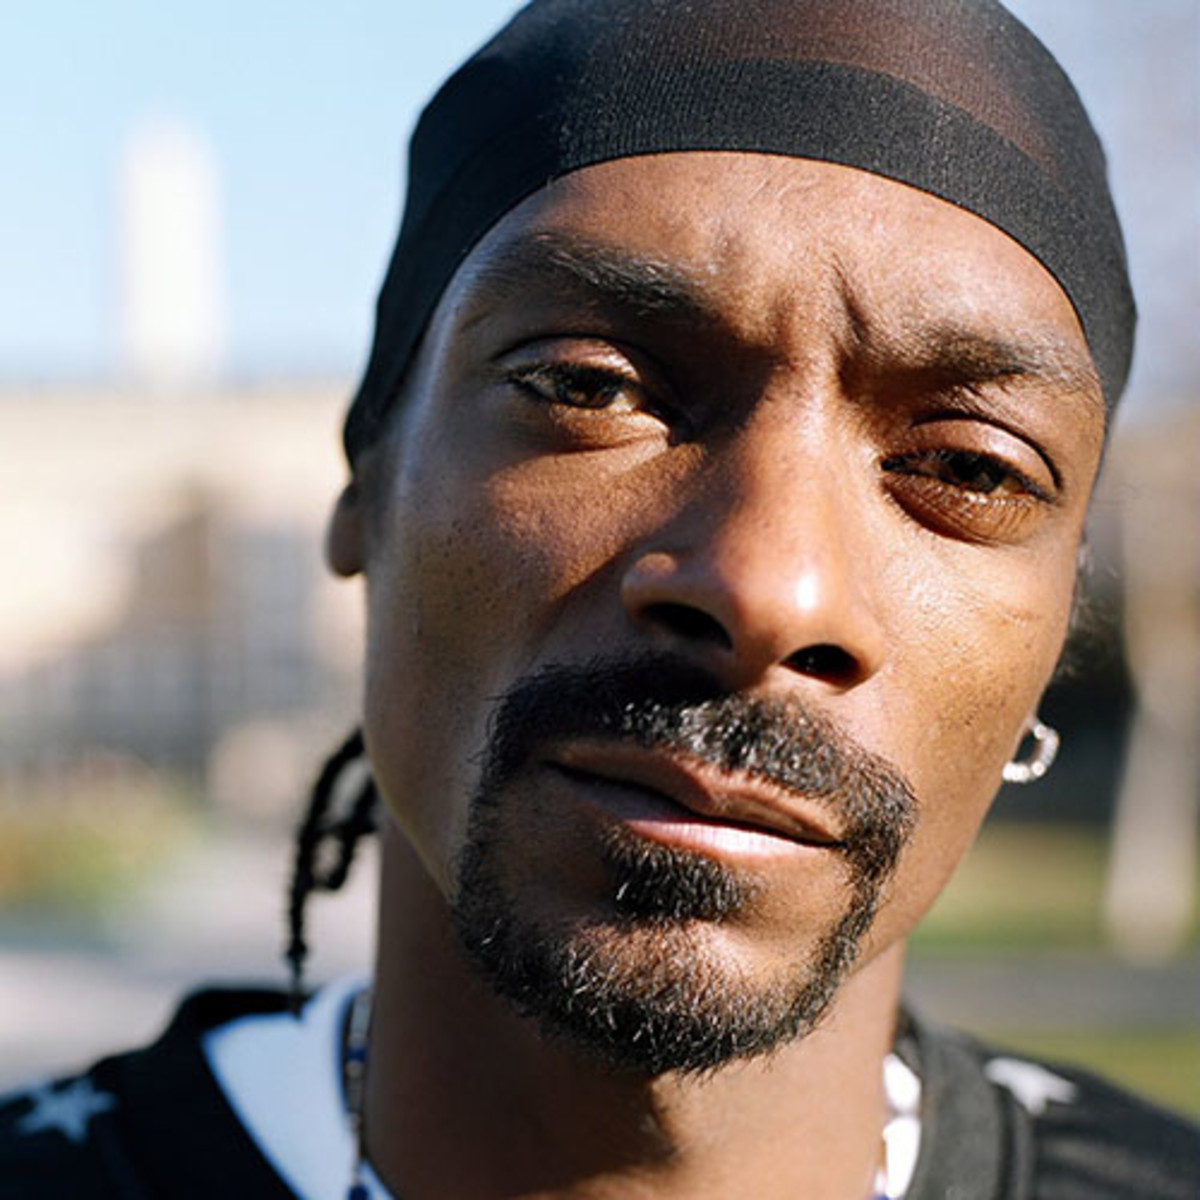 Snoop Dogg - Age, Songs & Albums - Biography